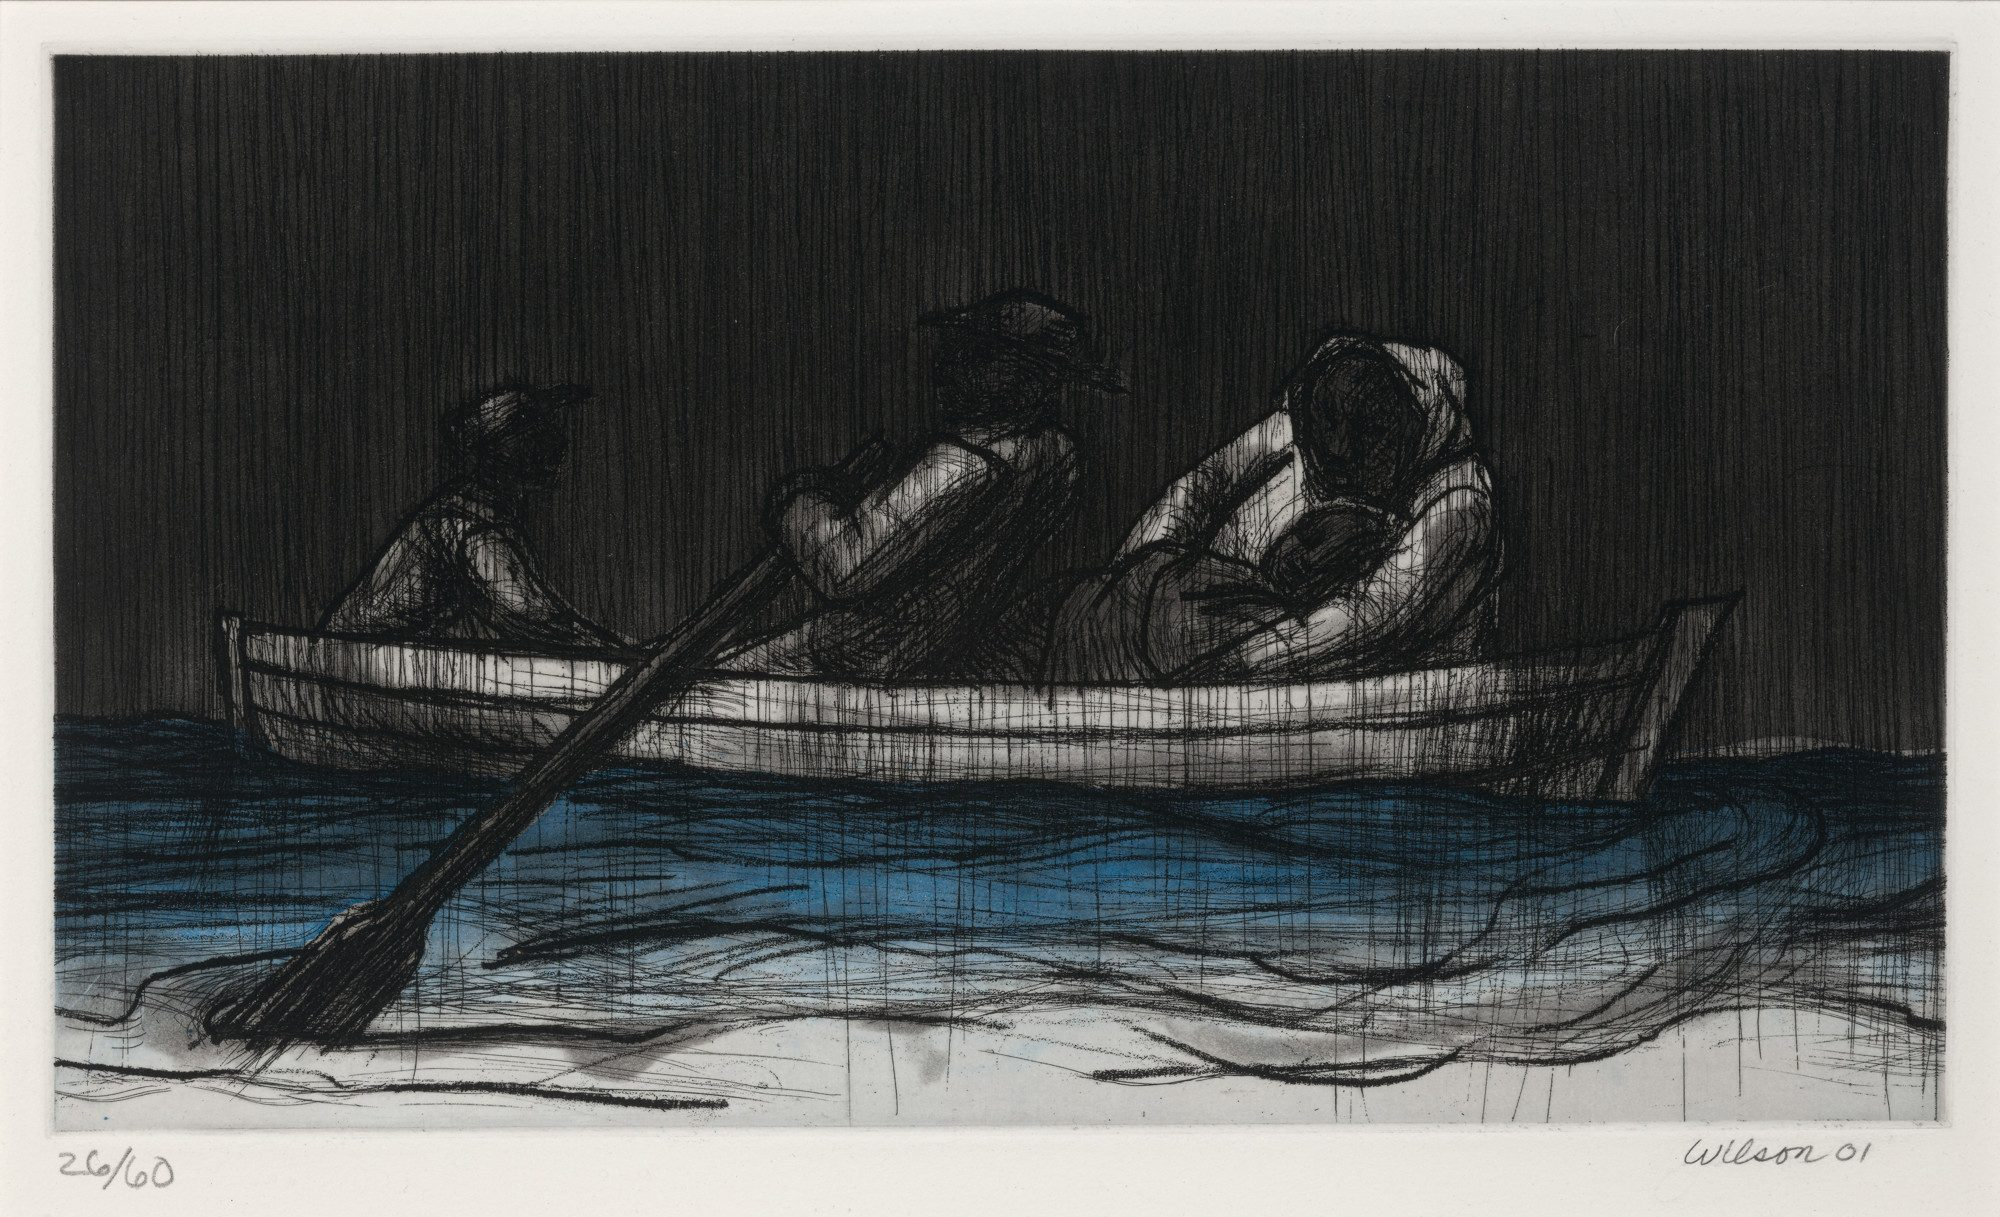 John Wilson (American b. 1922), The Richard Wright Suite, 2001. Etching, aquatint, 11 7/8 x 16 in. Museum purchase, Mather Bequest Fund. M.2003.2.4